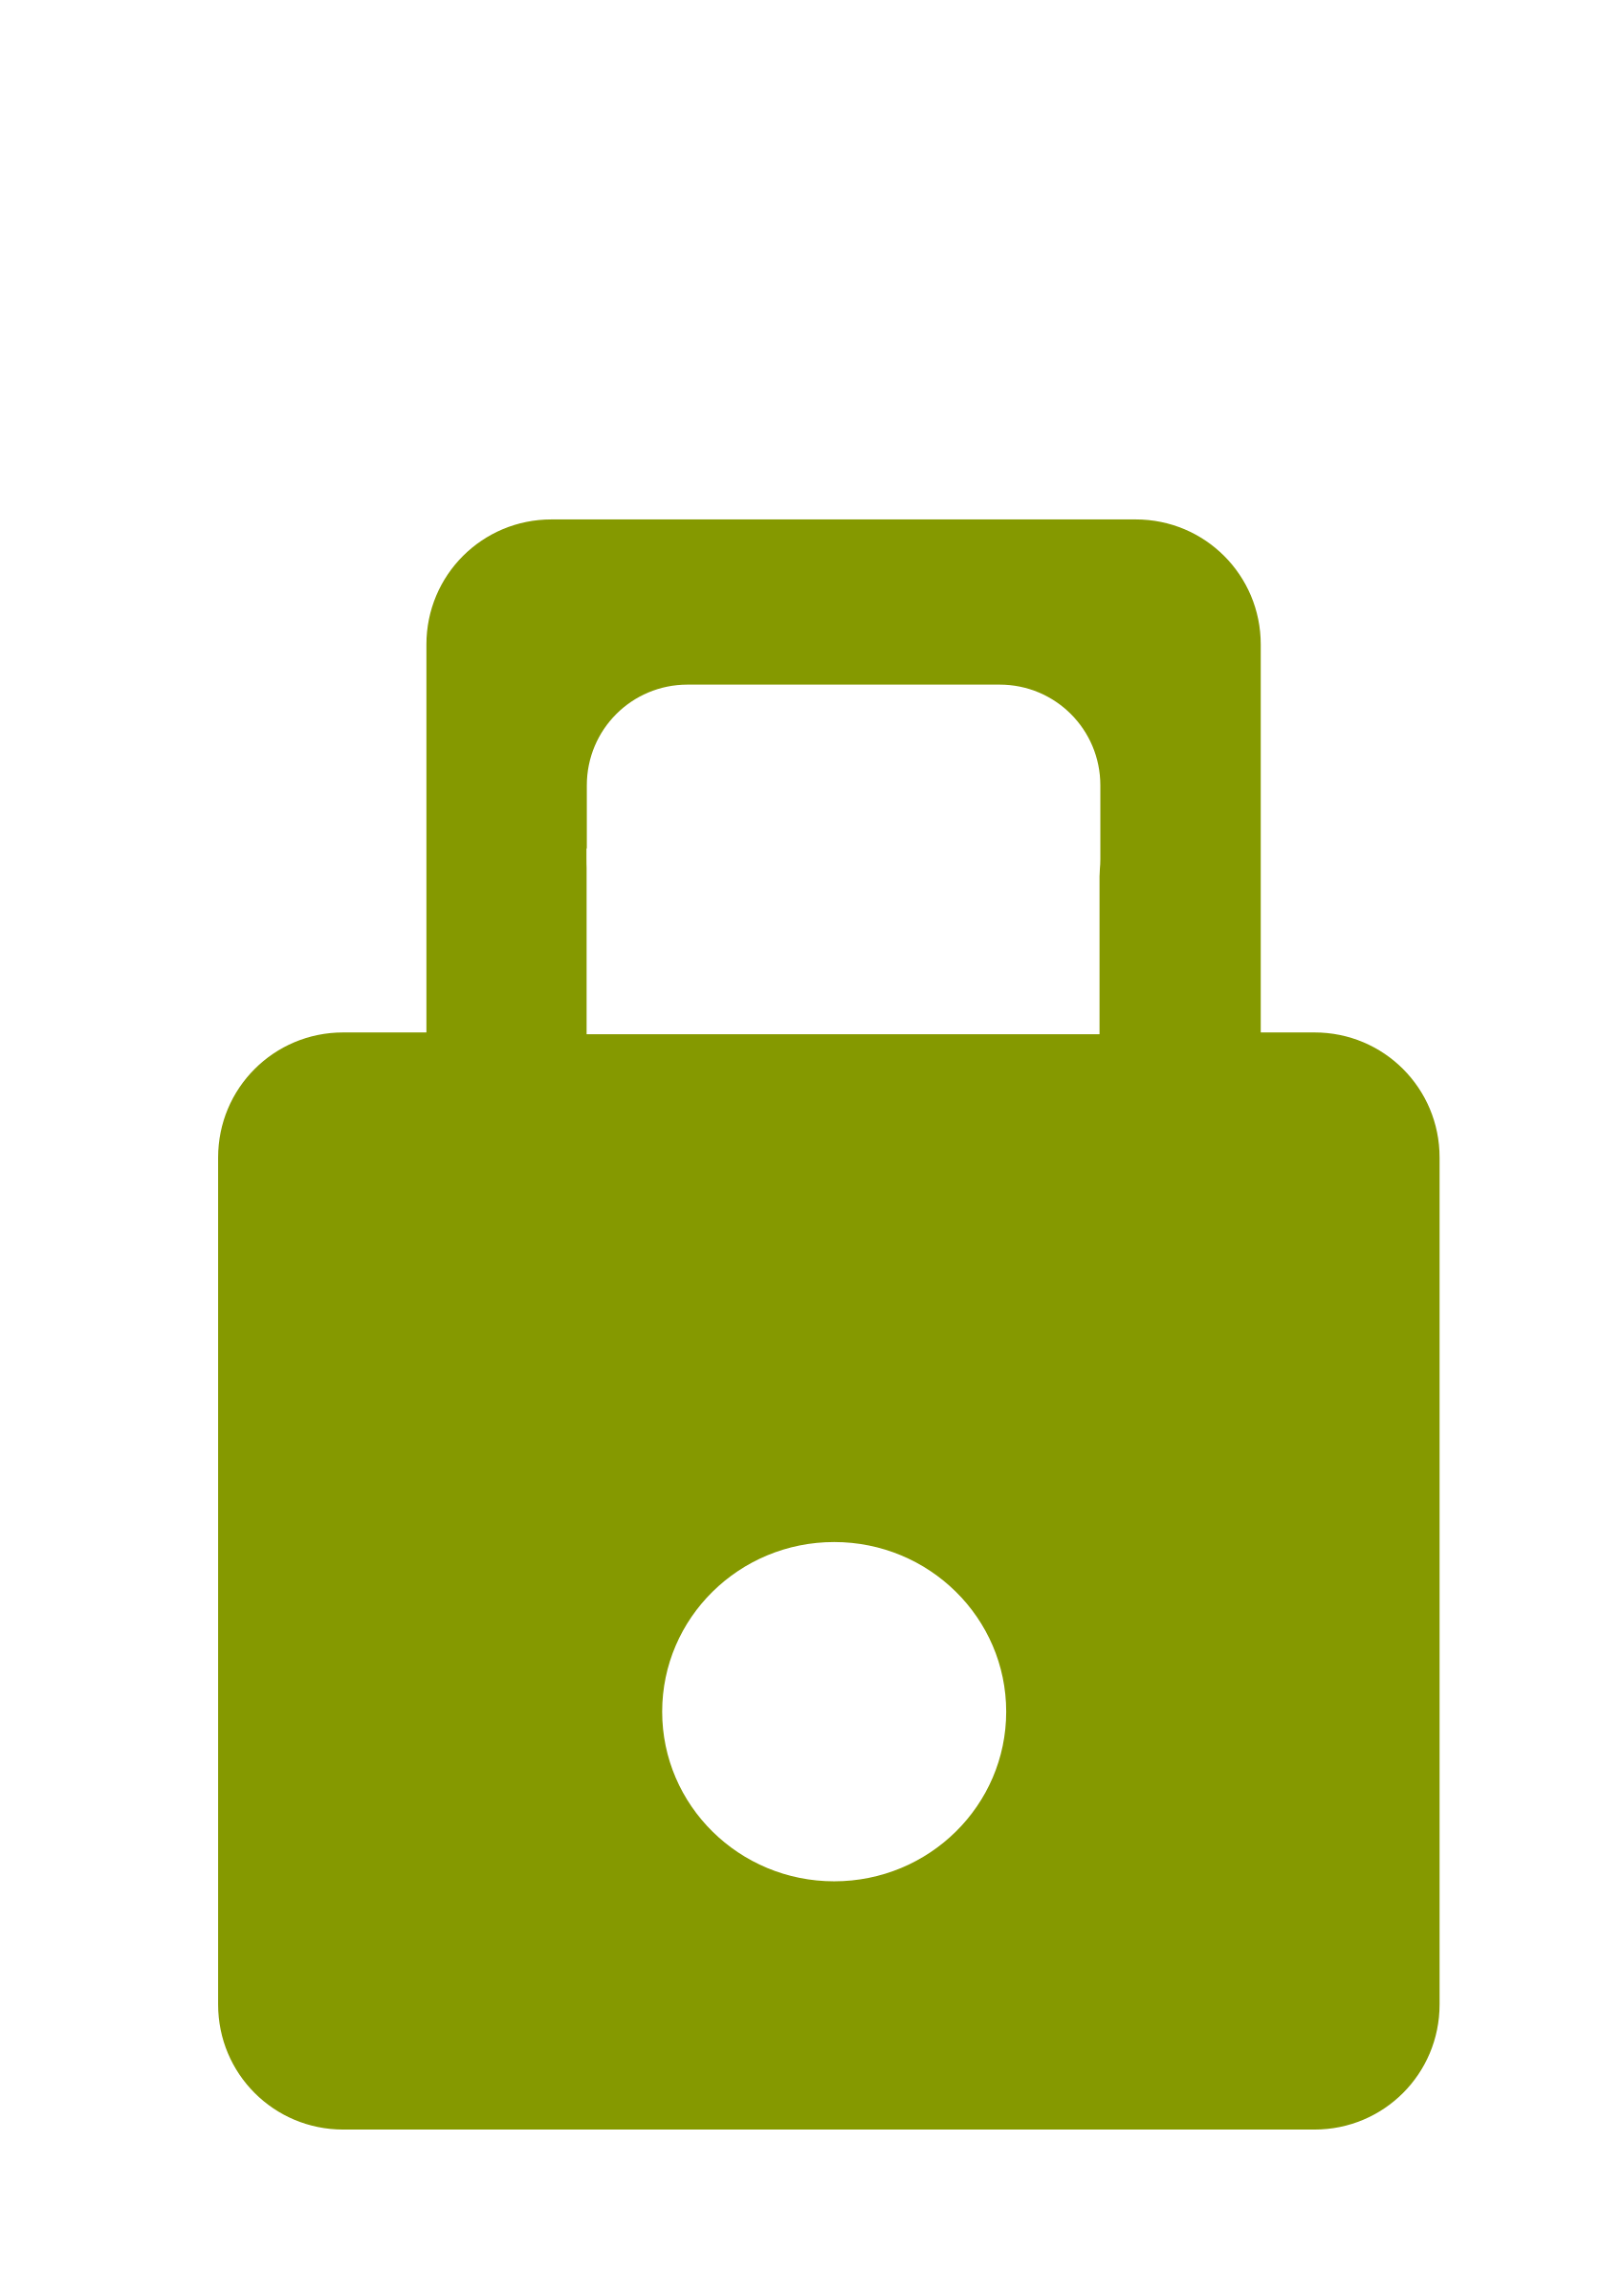 Solarized green icons png. Lock clipart transparent